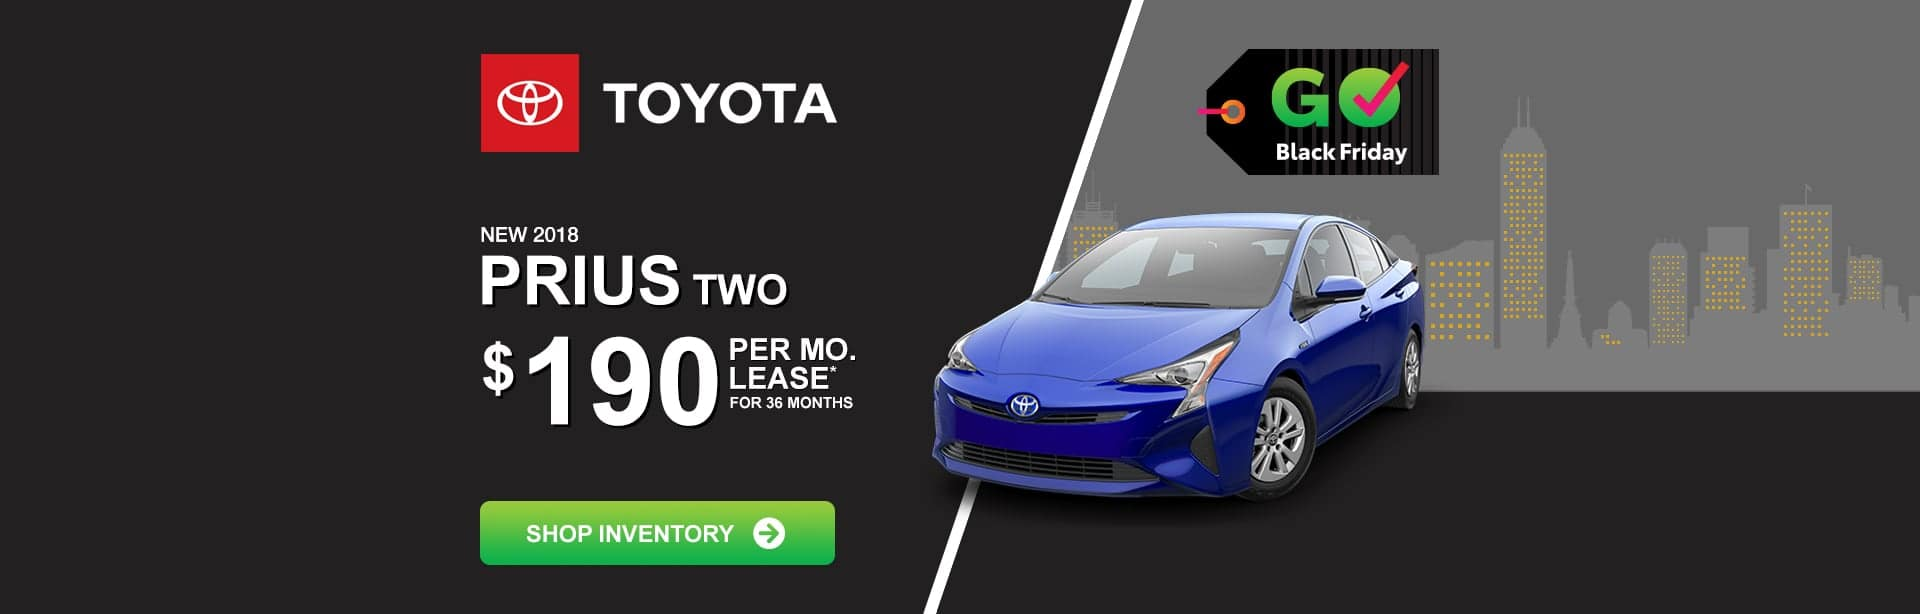 Toyota Prius Lease Special near Columbus, Indiana